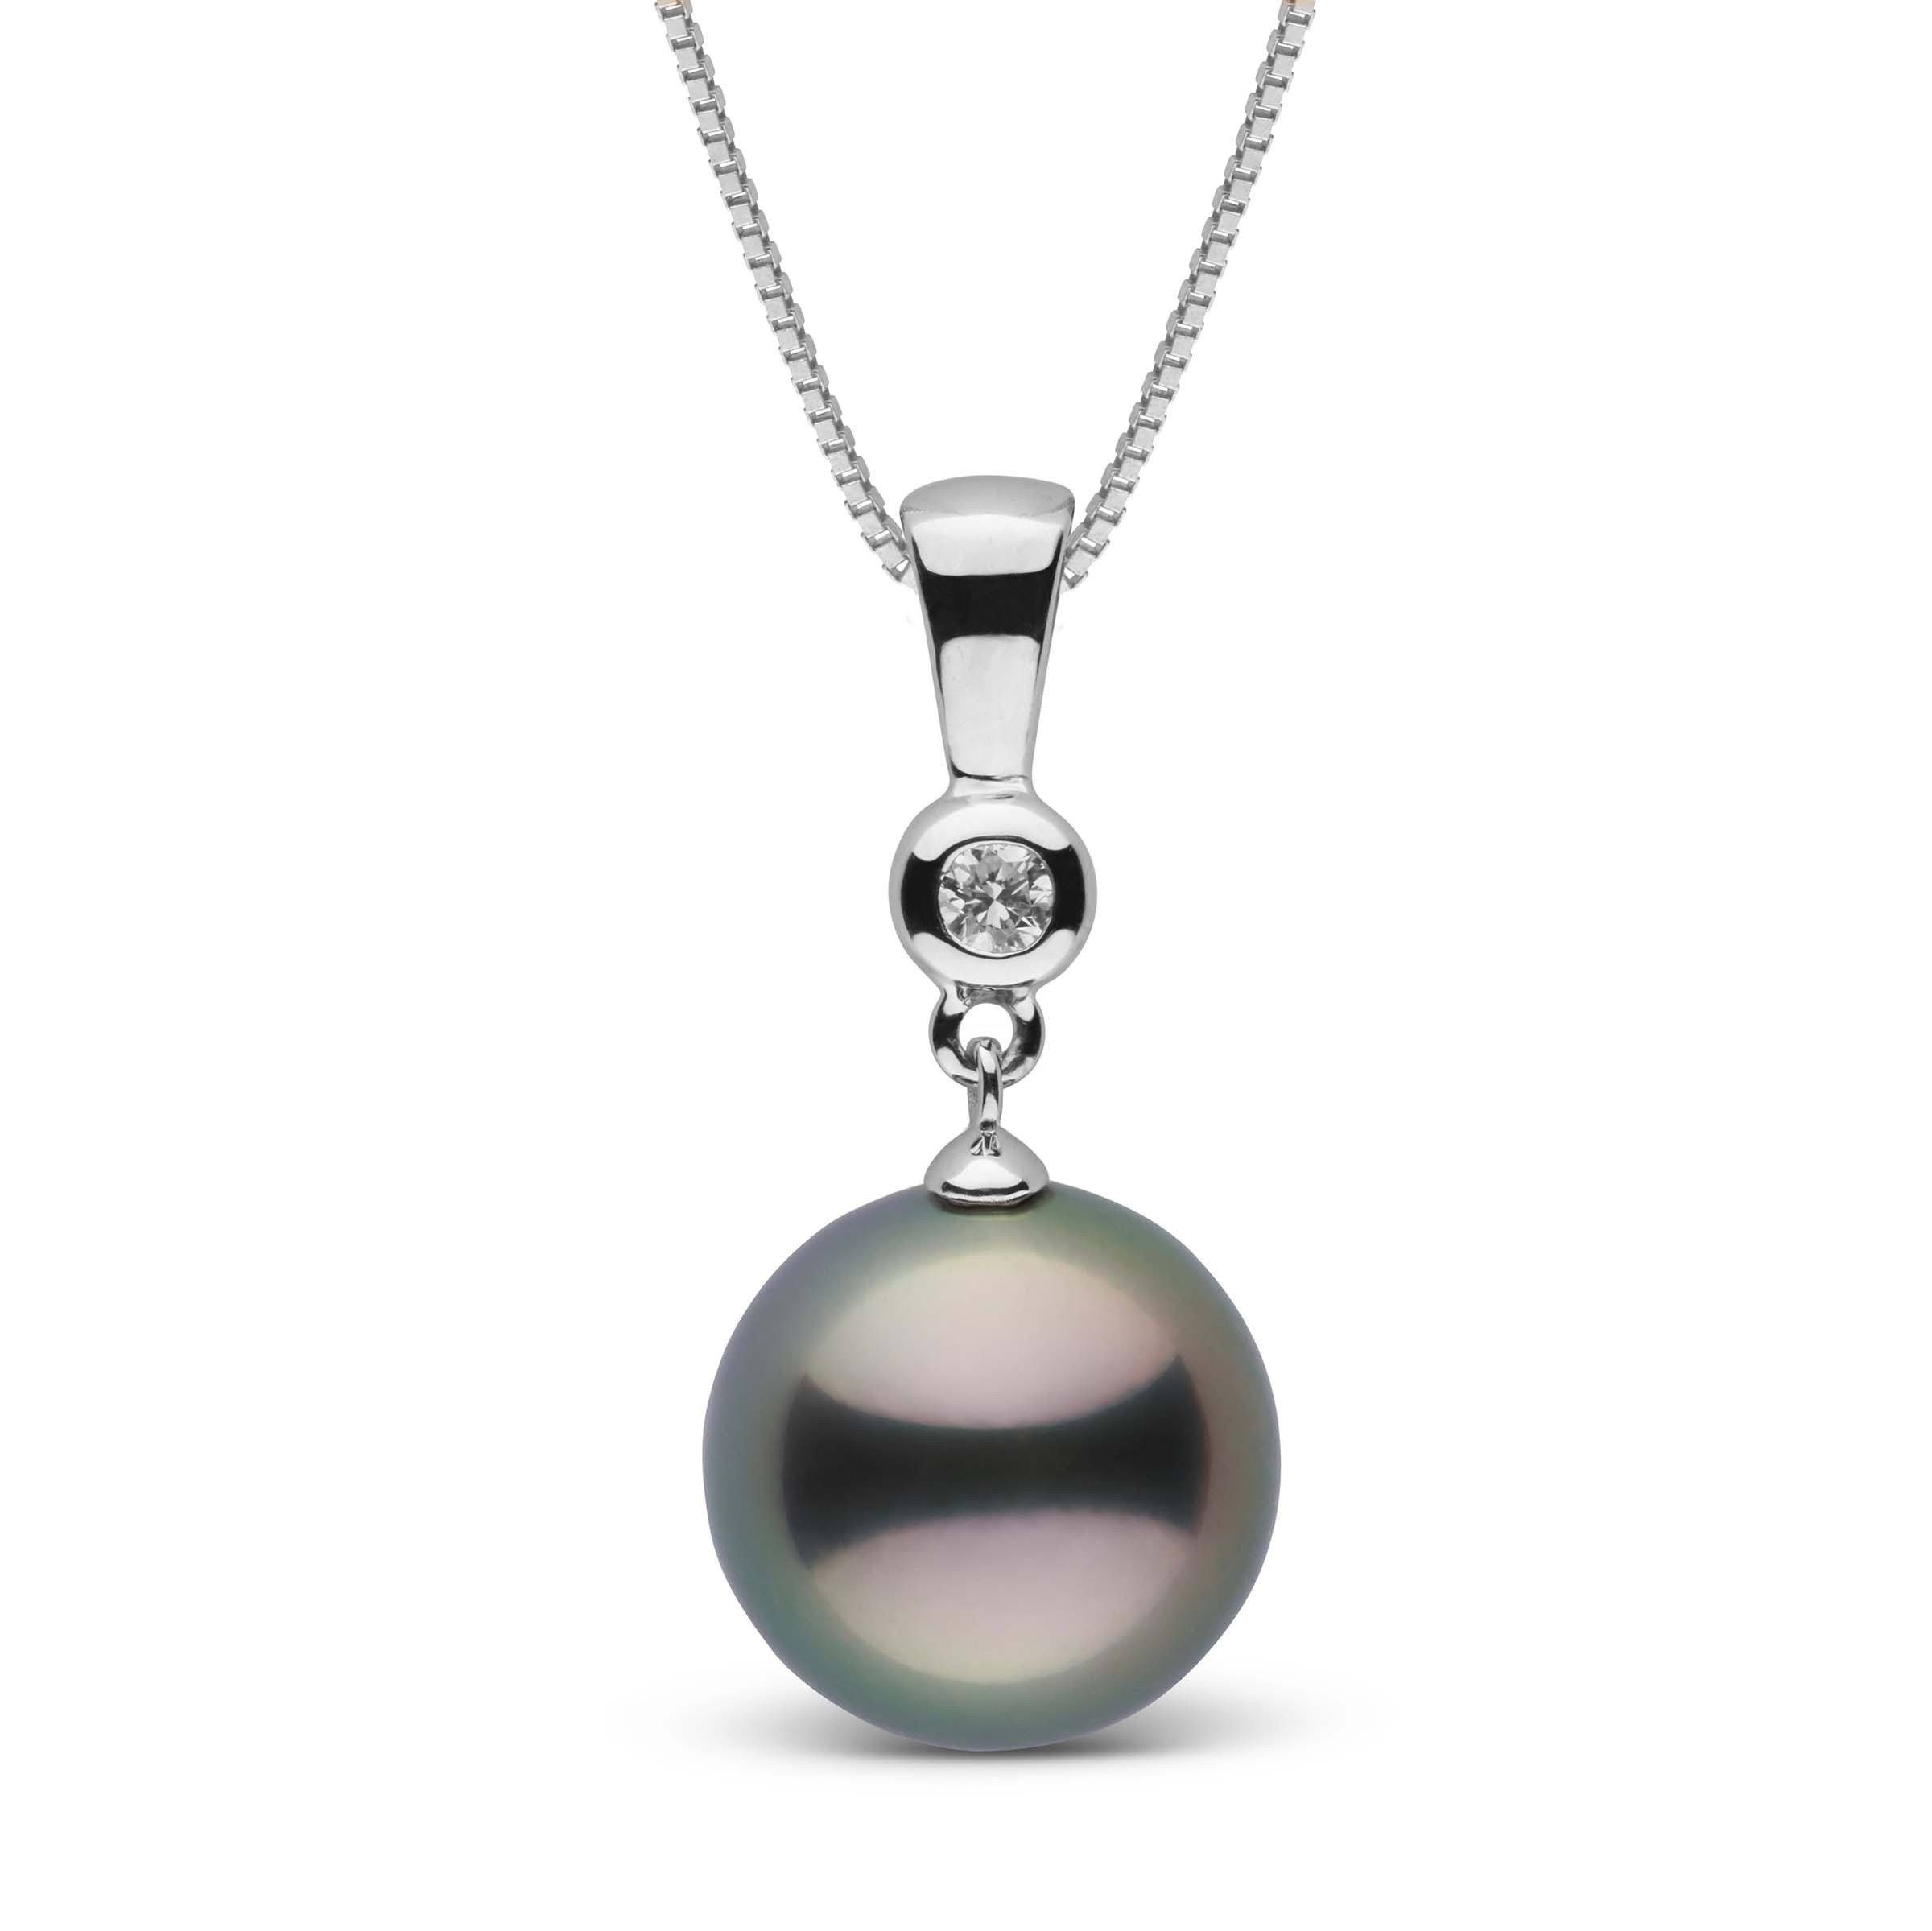 Romantic Collection 11.0-12.0 mm Tahitian Pearl & Diamond Pendant